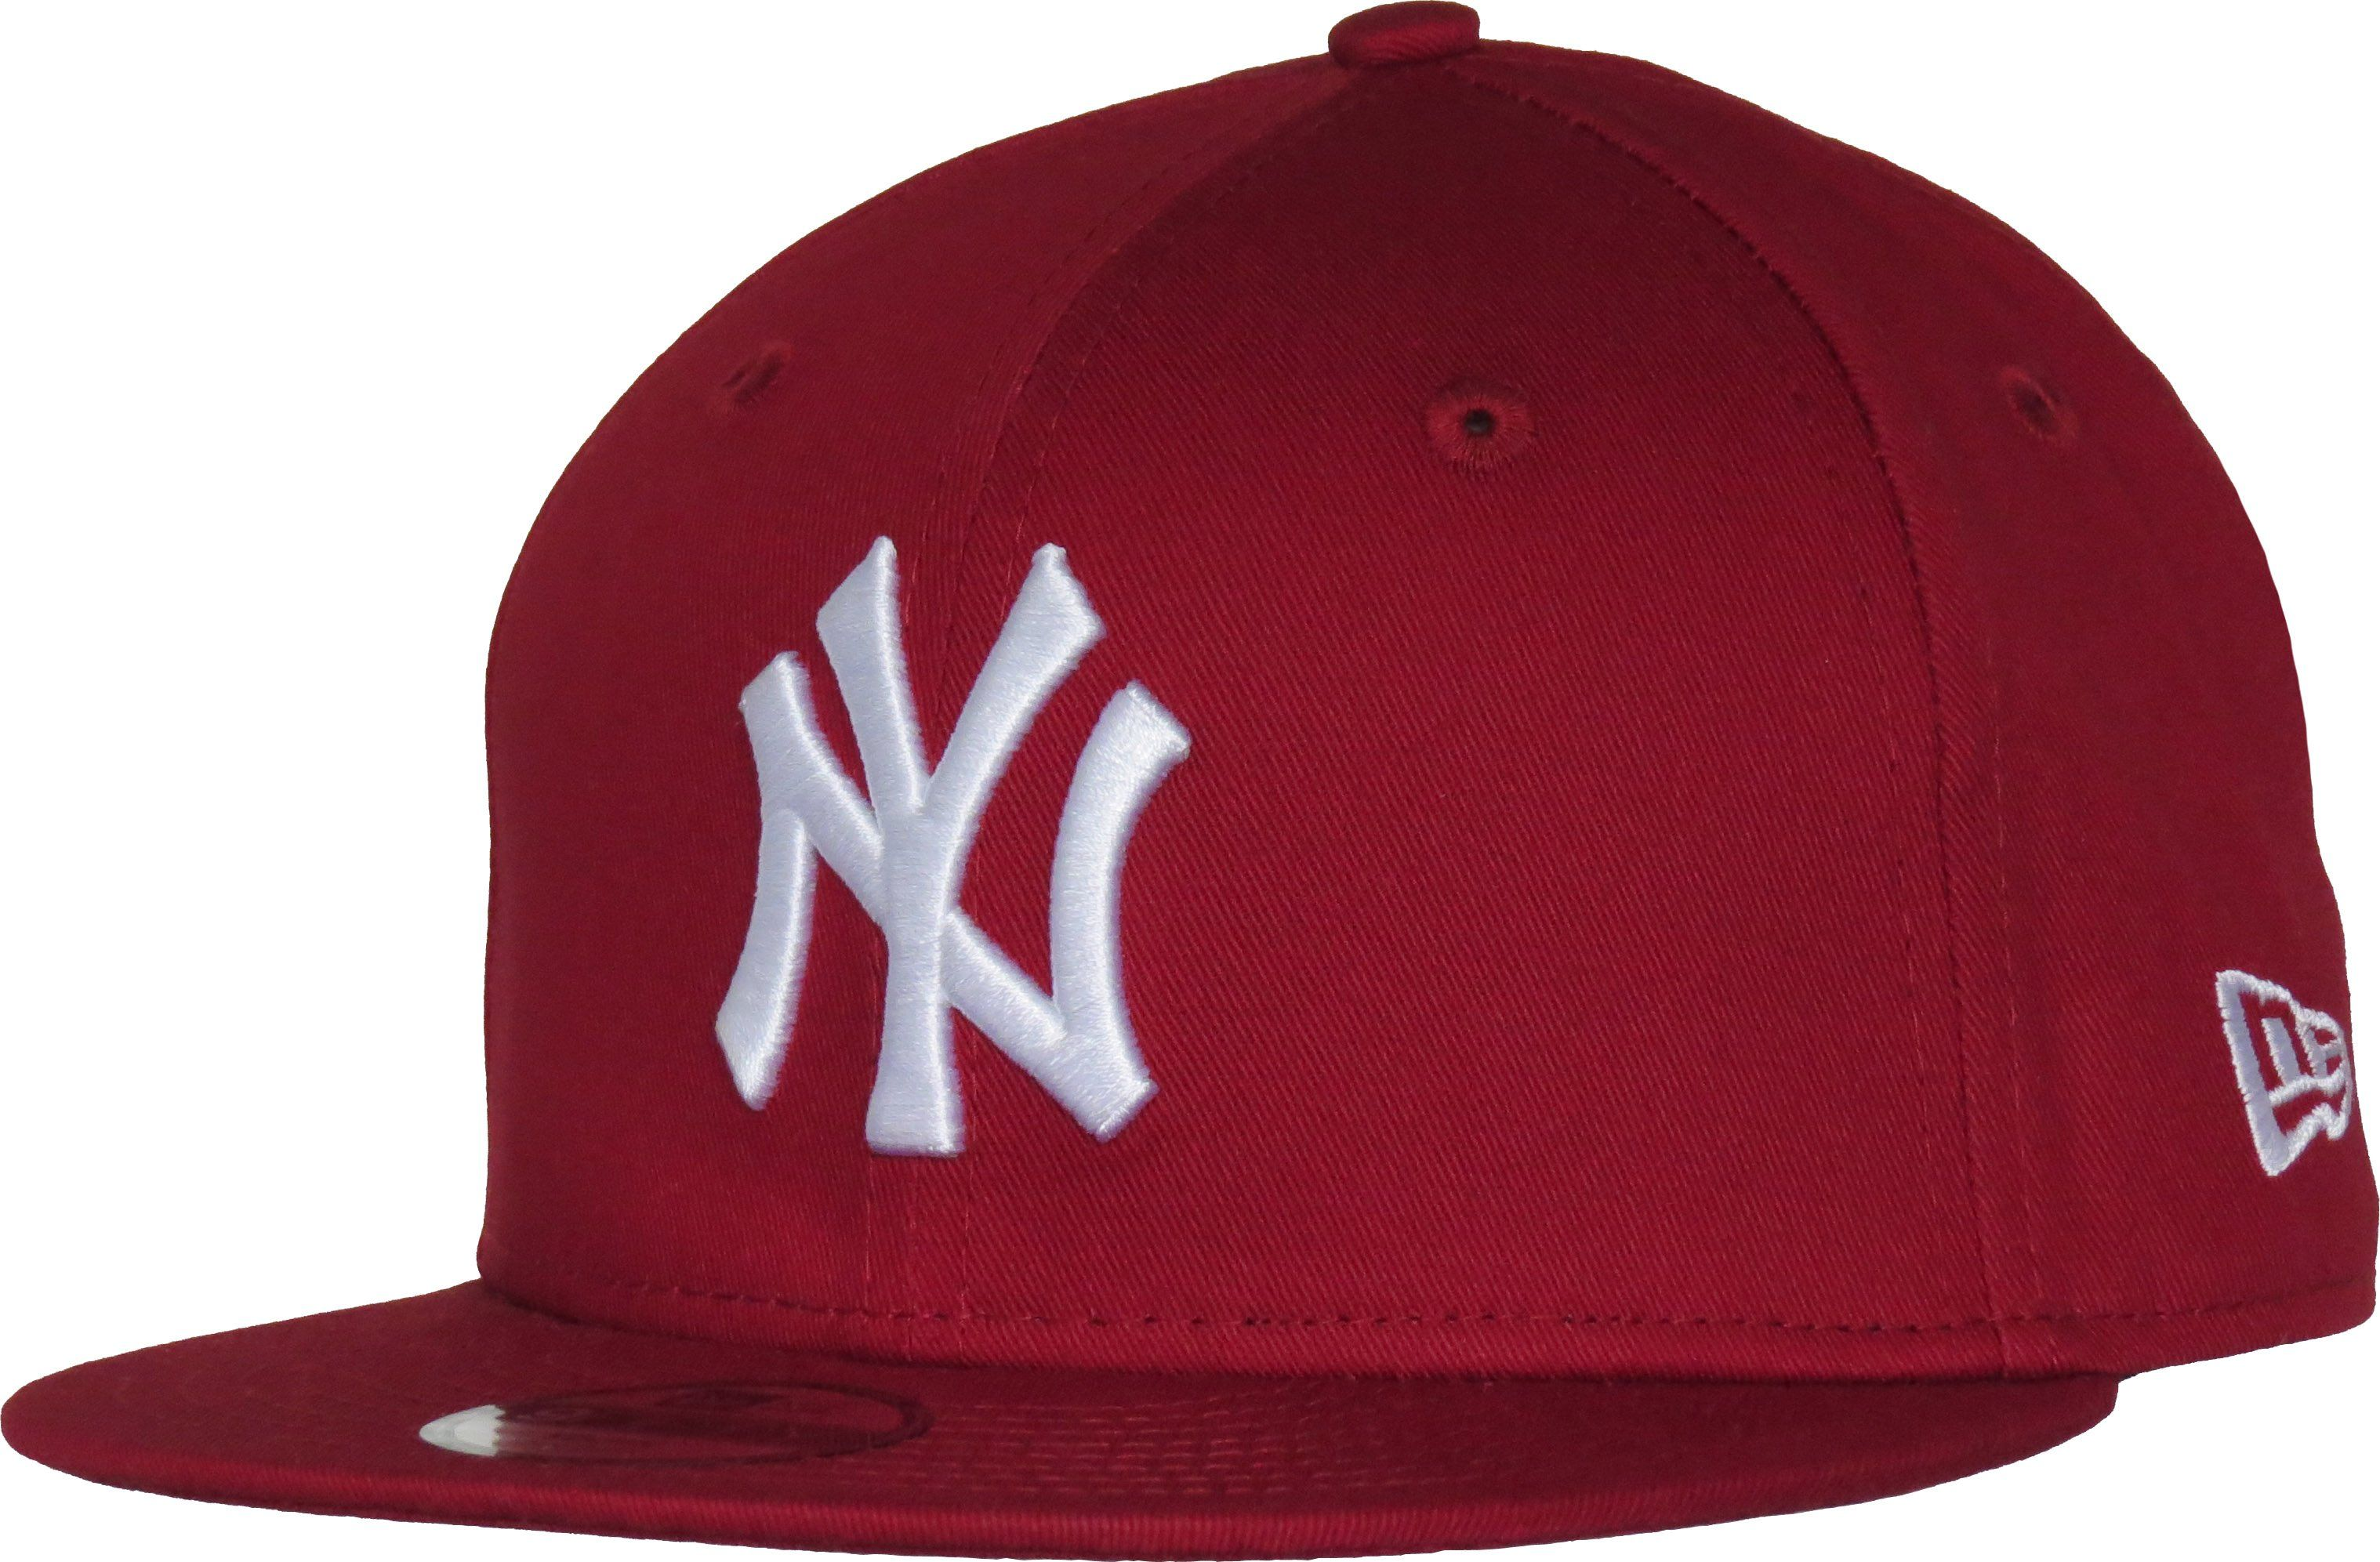 77a6f65601b921 NY Yankees New Era 950 Kids Essential Red Snapback Cap (Age 4 - 10 yea –  lovemycap